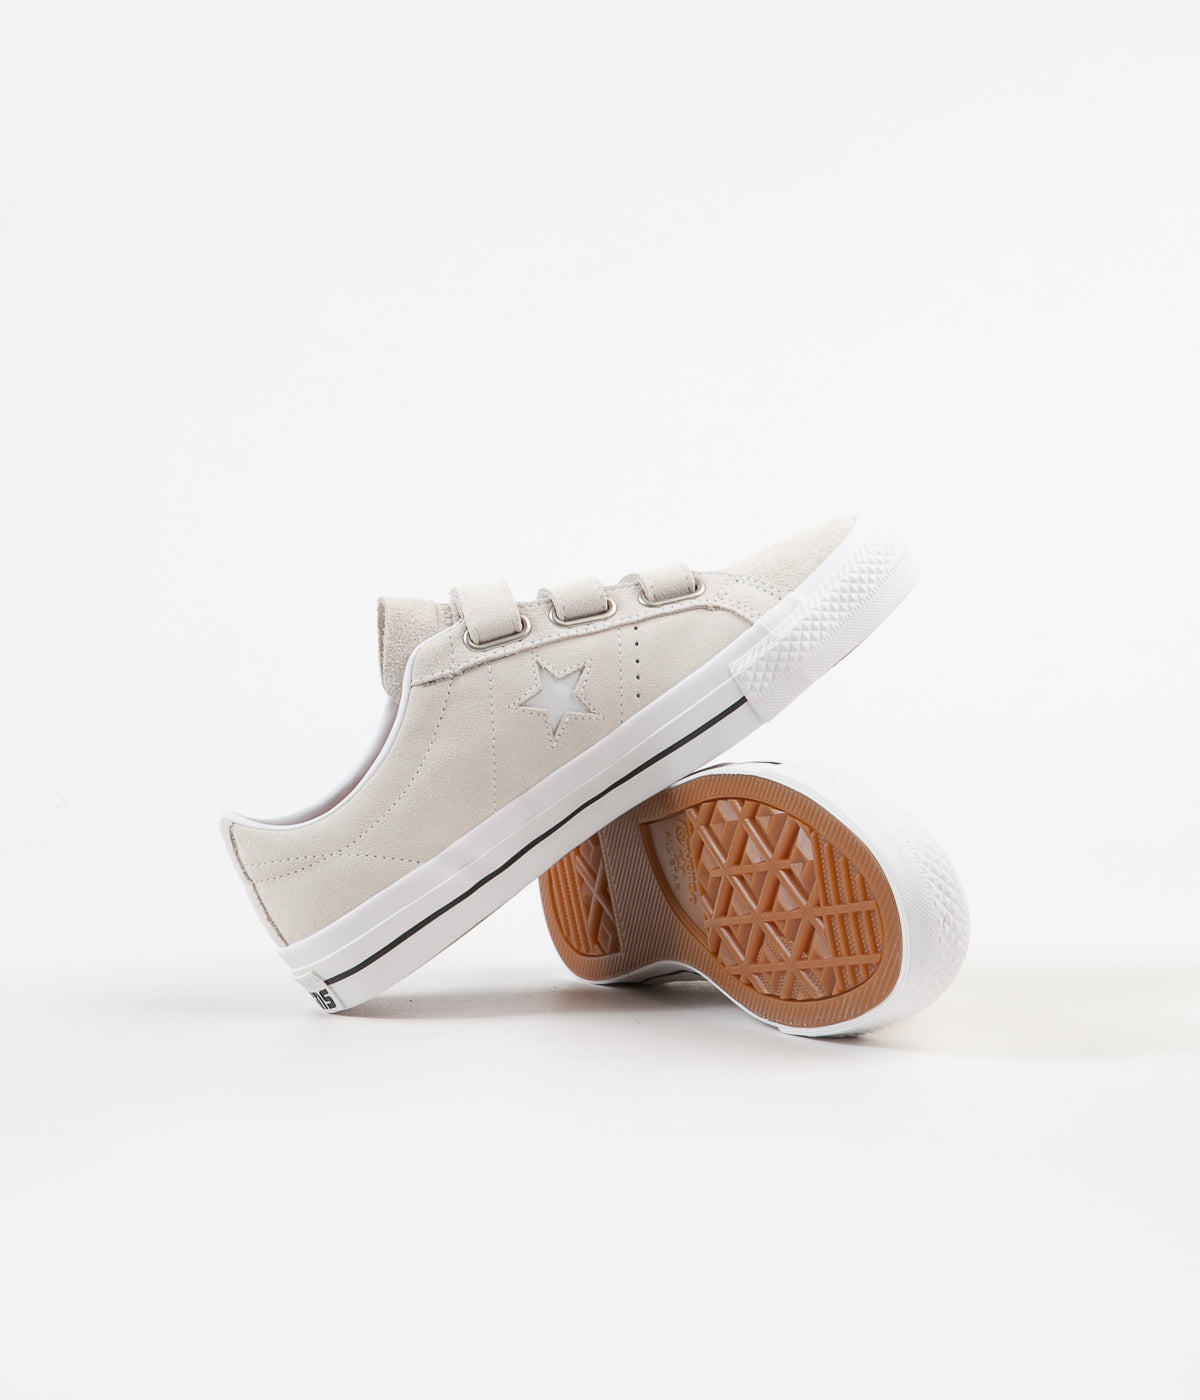 Converse One Star Pro 3V Ox Shoes